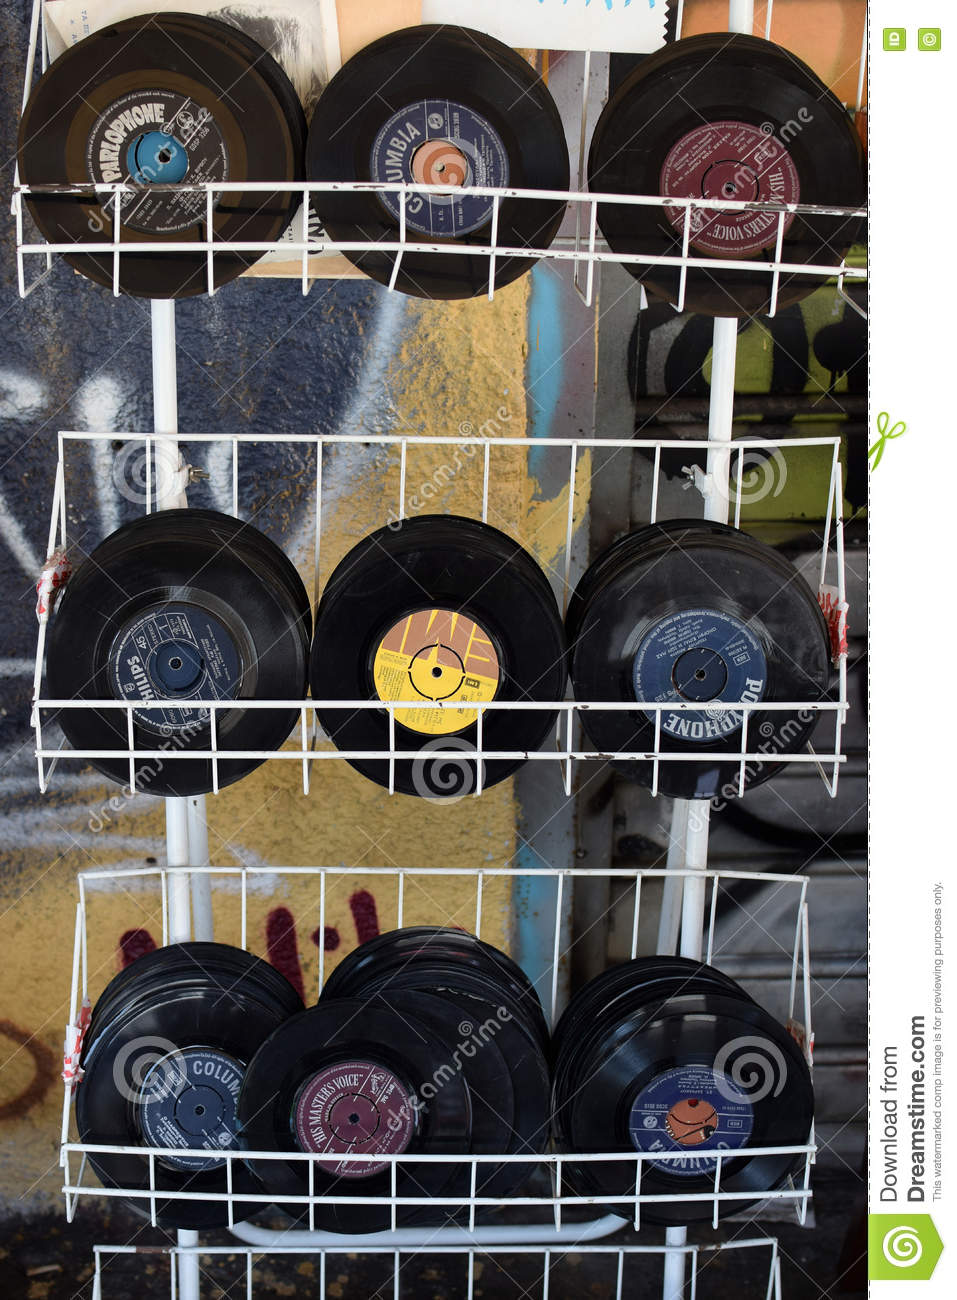 Used records vinyl singles editorial photography  Image of black